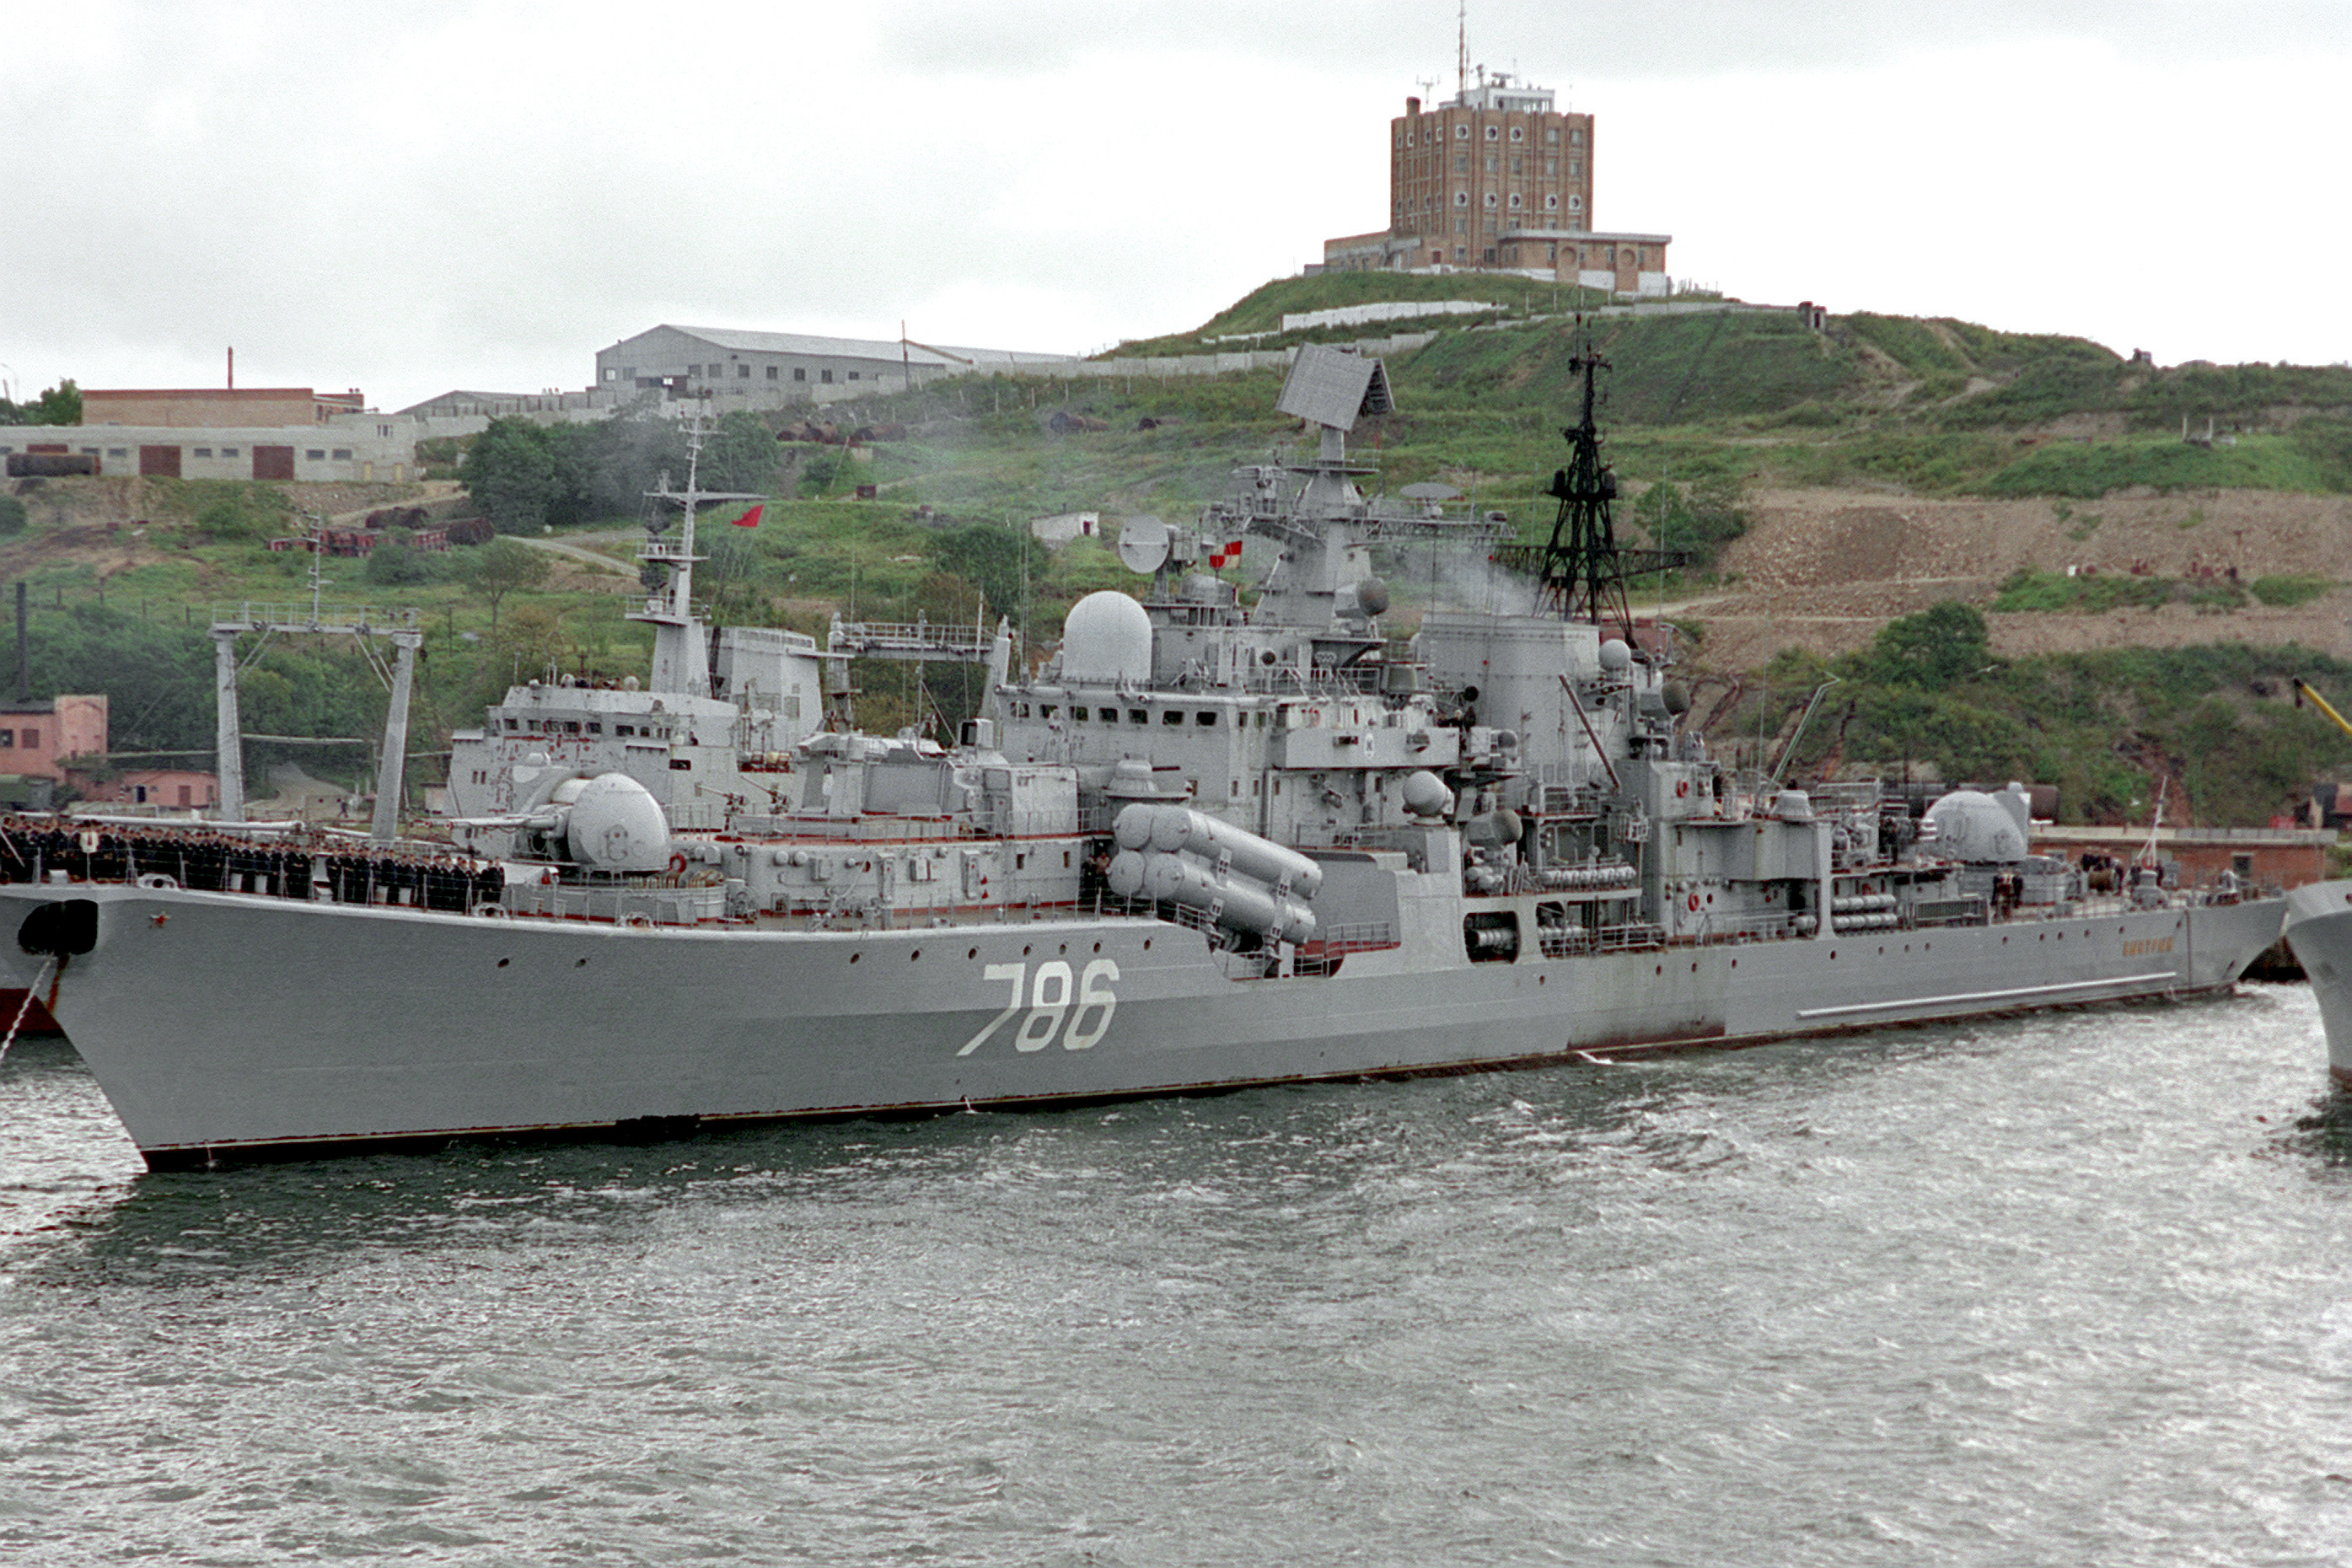 A Soviet Sovremenny-class destroyer. The Sovremenny-class was designed principally as an anti-surface warship.